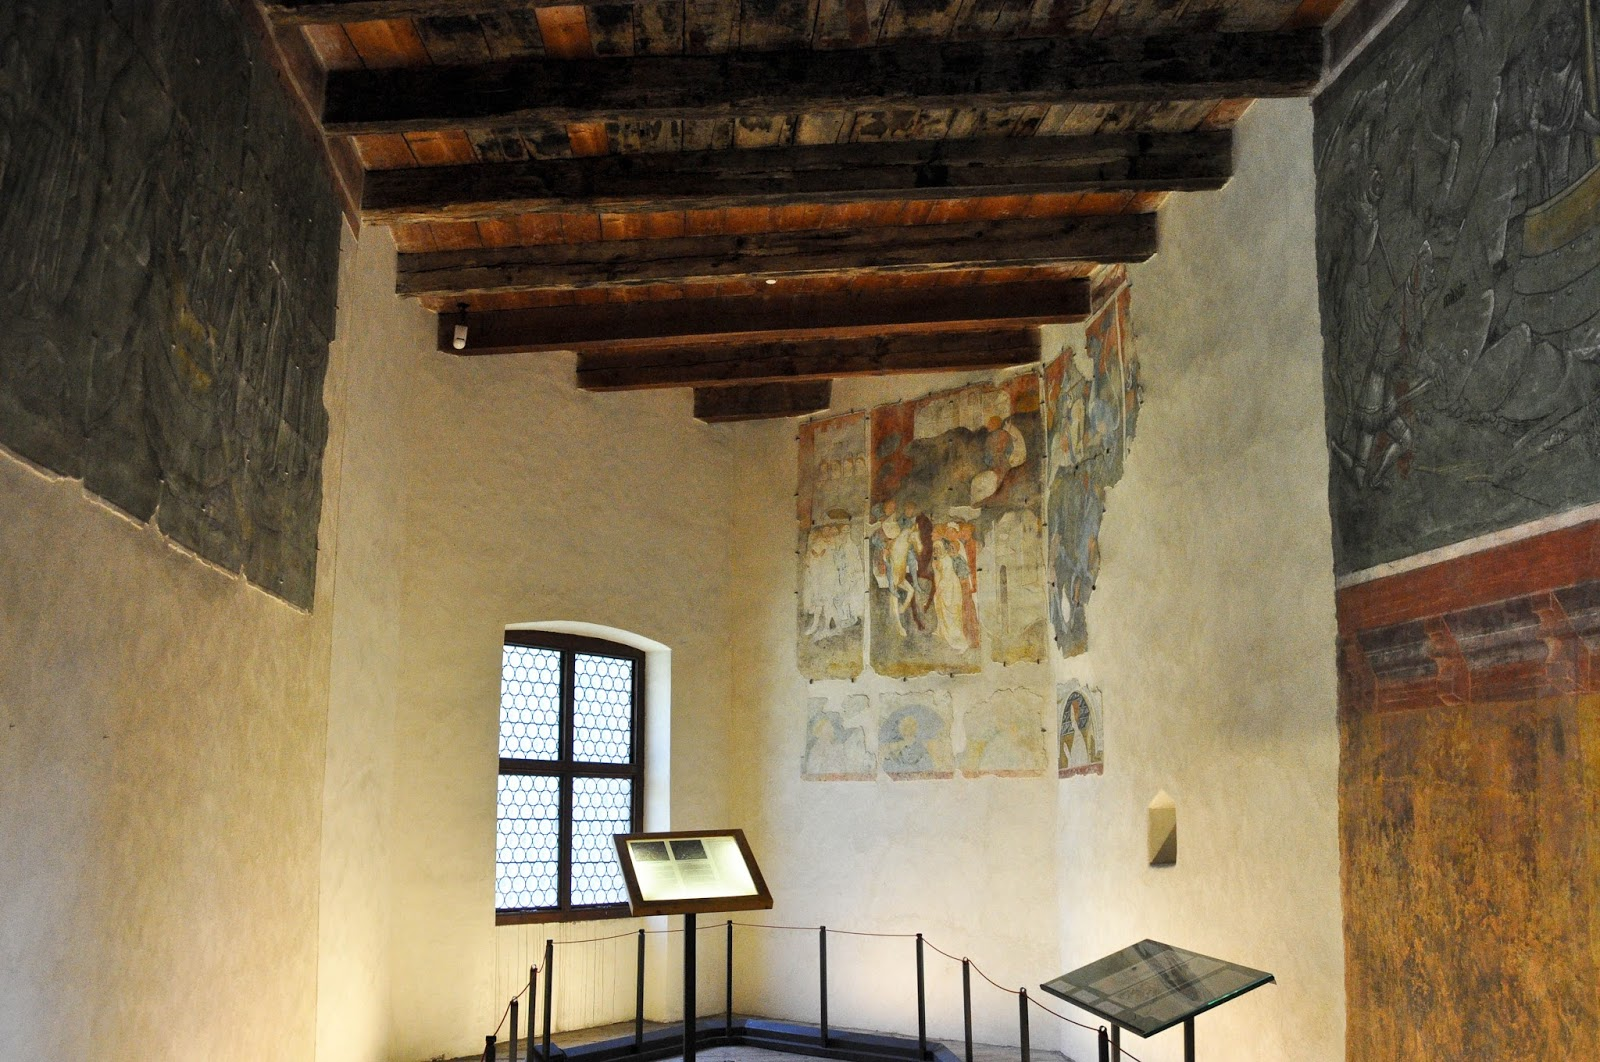 Room with preserved frescoes, Runkelstein Castle, Bolzano, South Tyrol, Italy